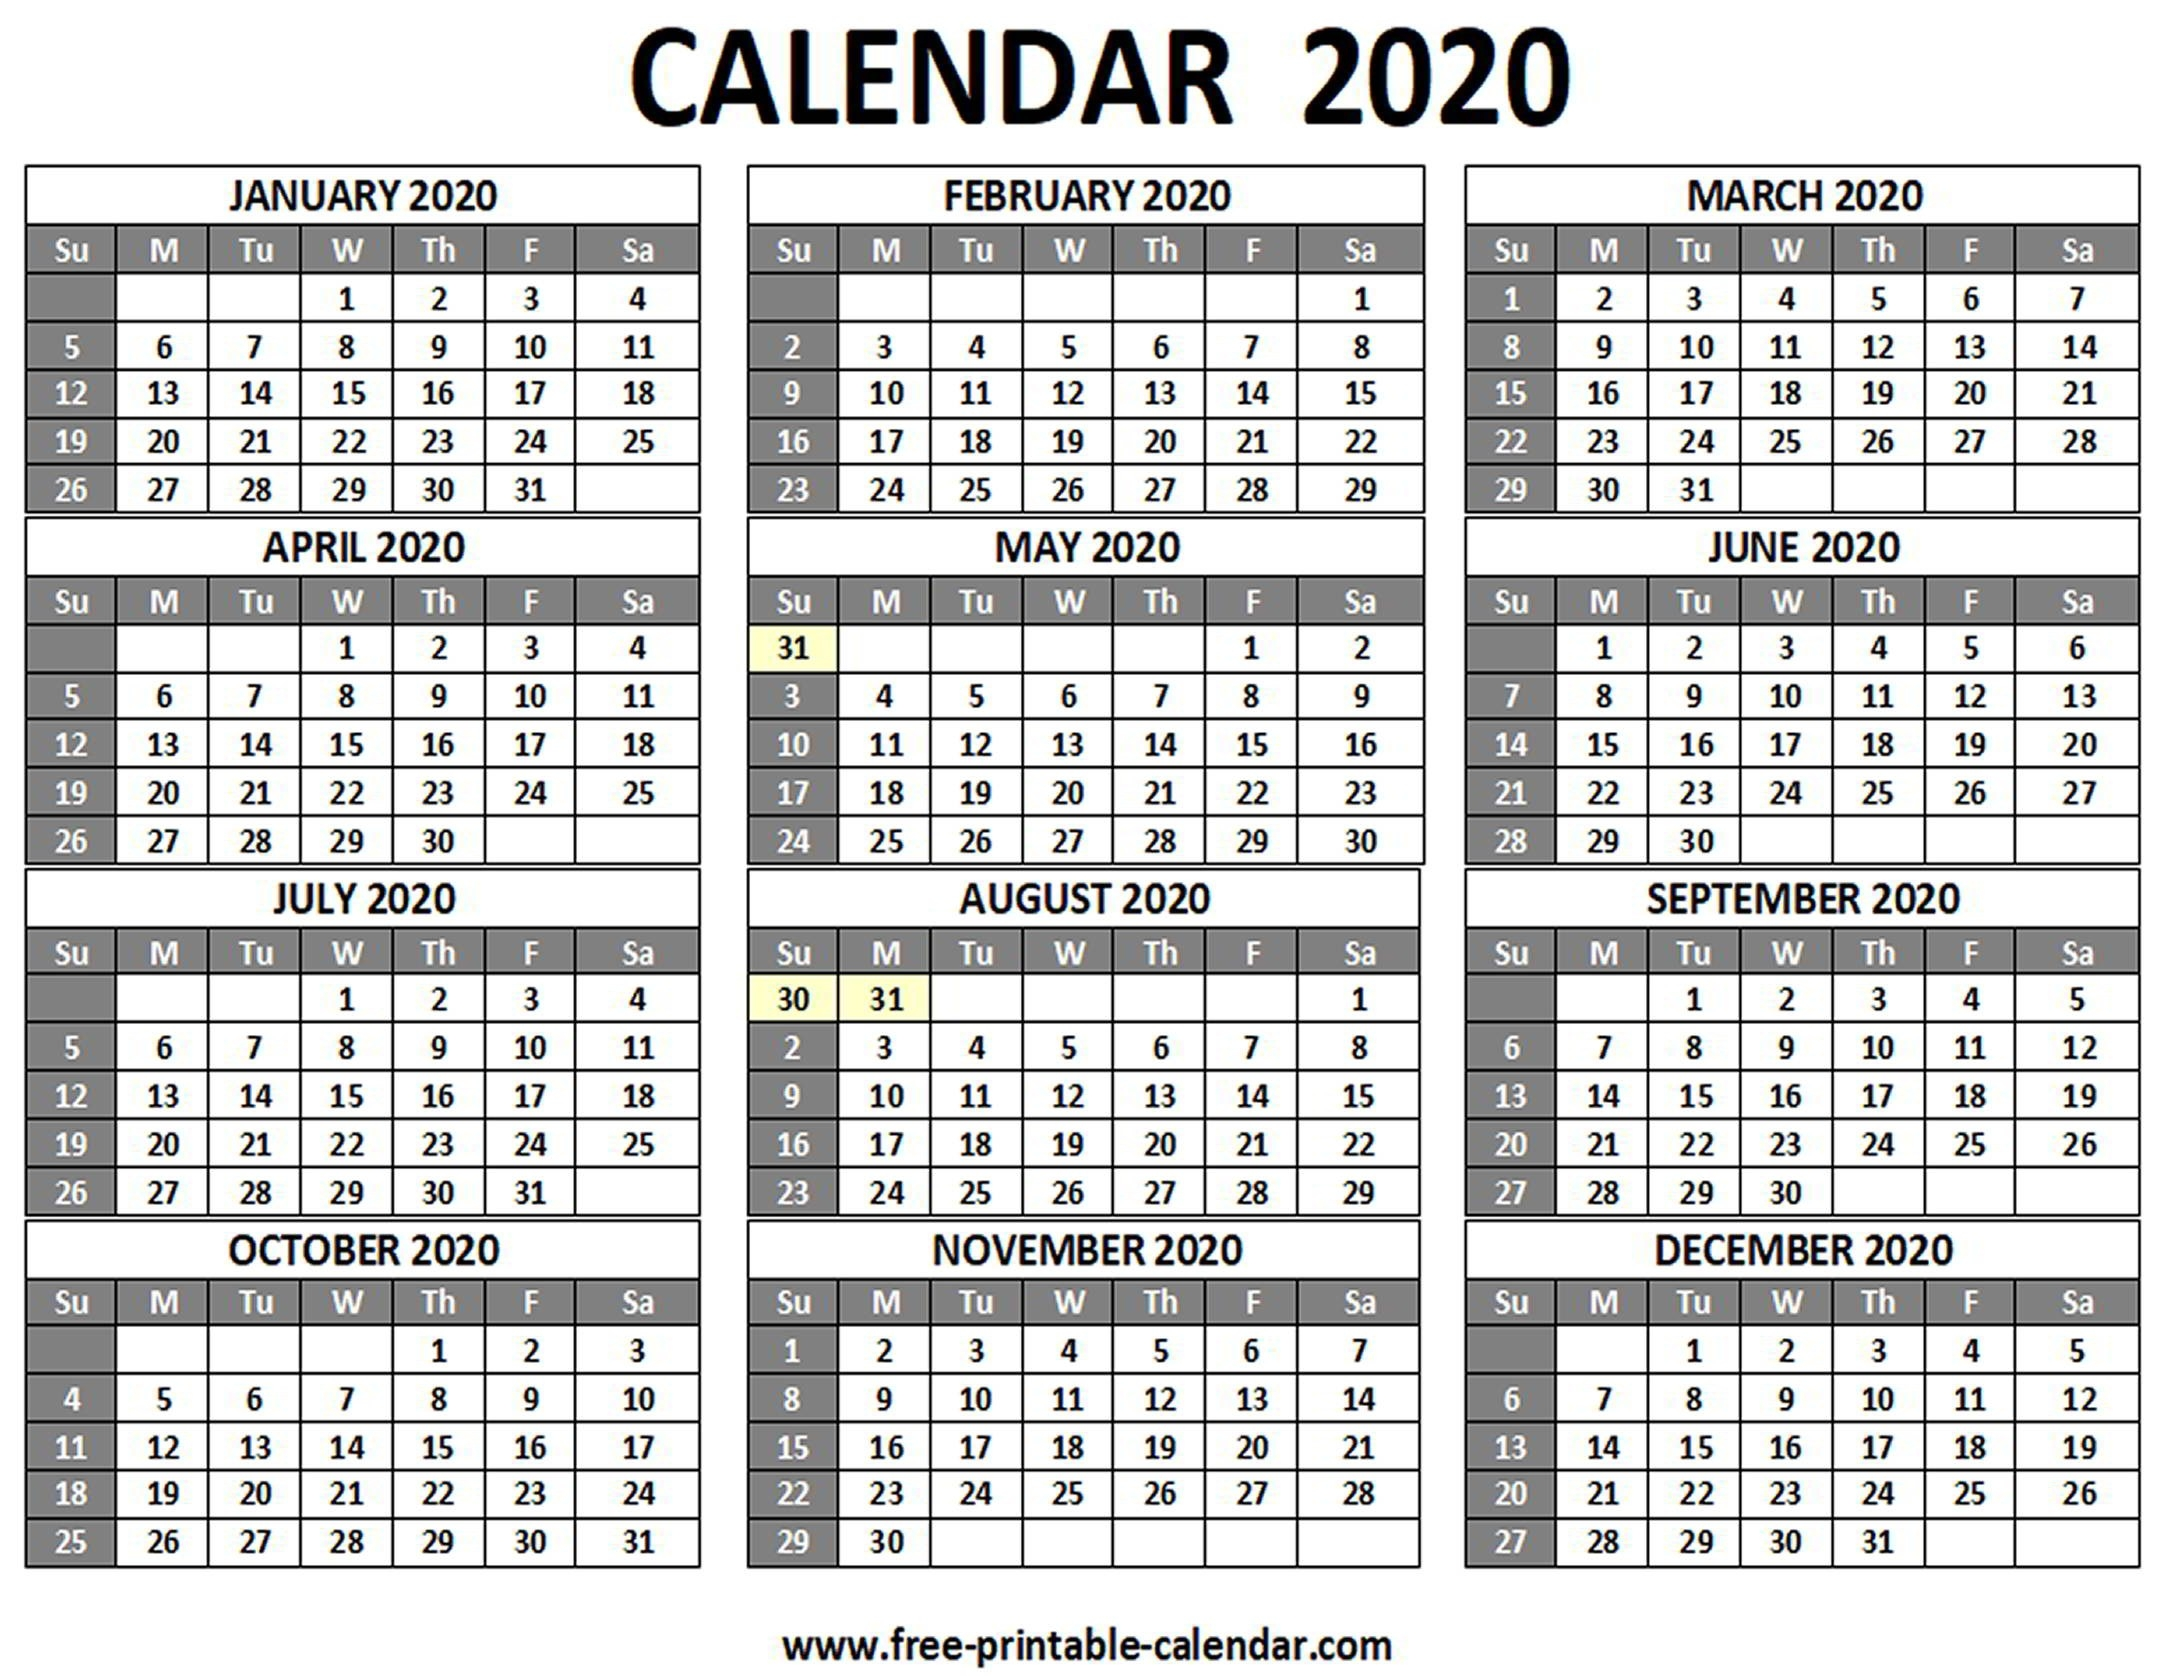 Printable 2020 Calendar - Free-Printable-Calendar  2020 Calendar Printable One Page